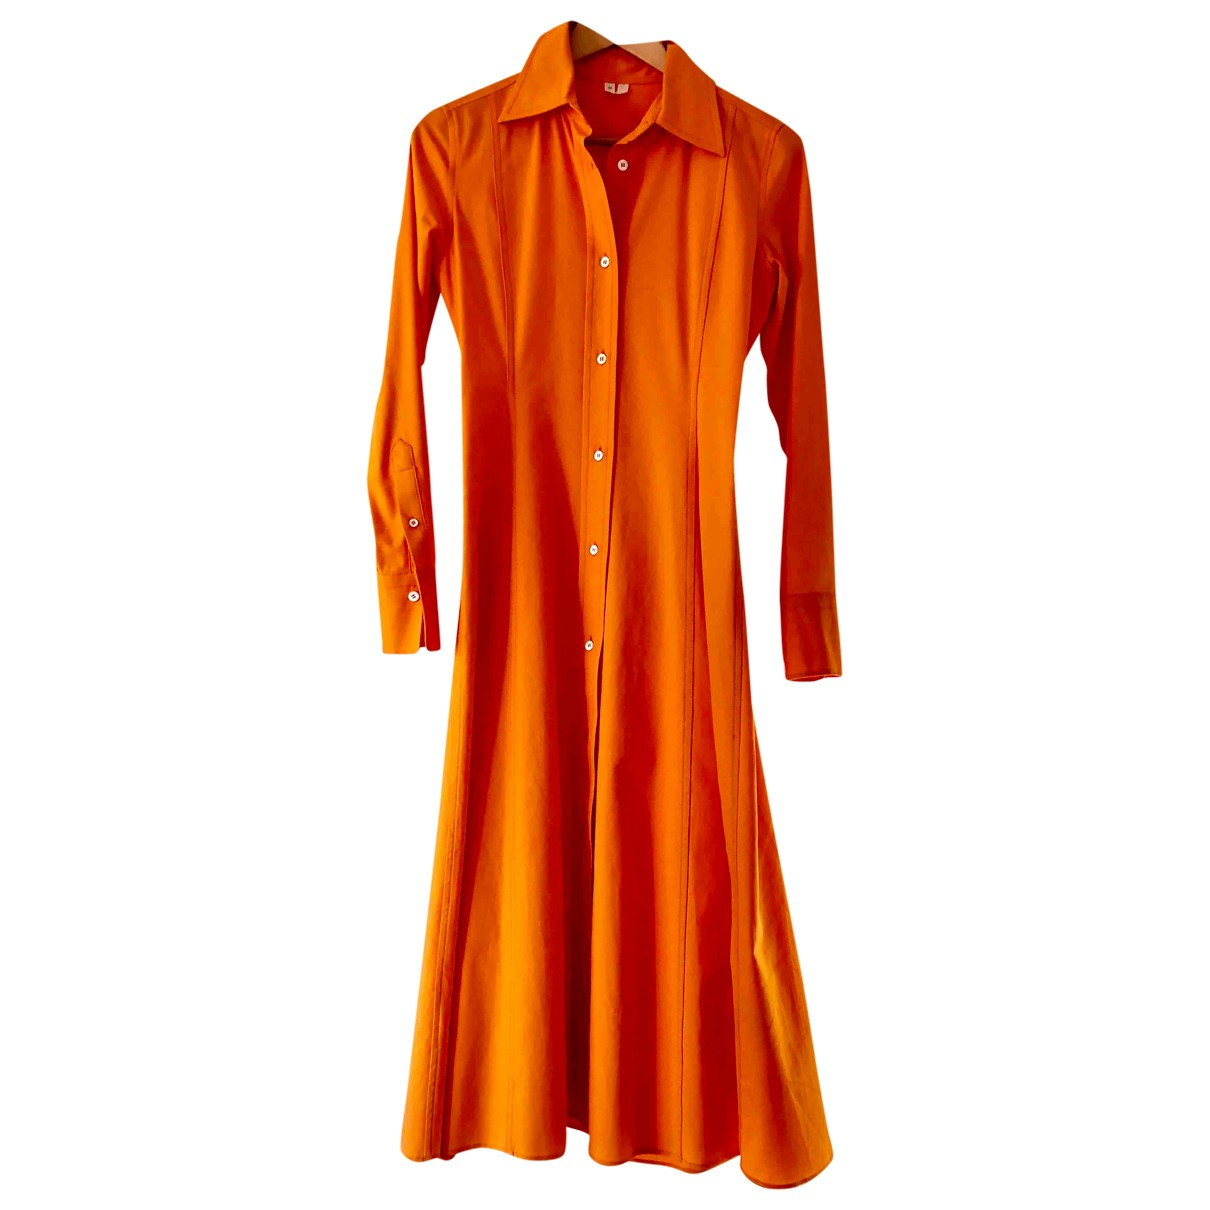 Arket \N Kleid in  Orange Baumwolle - Elasthan